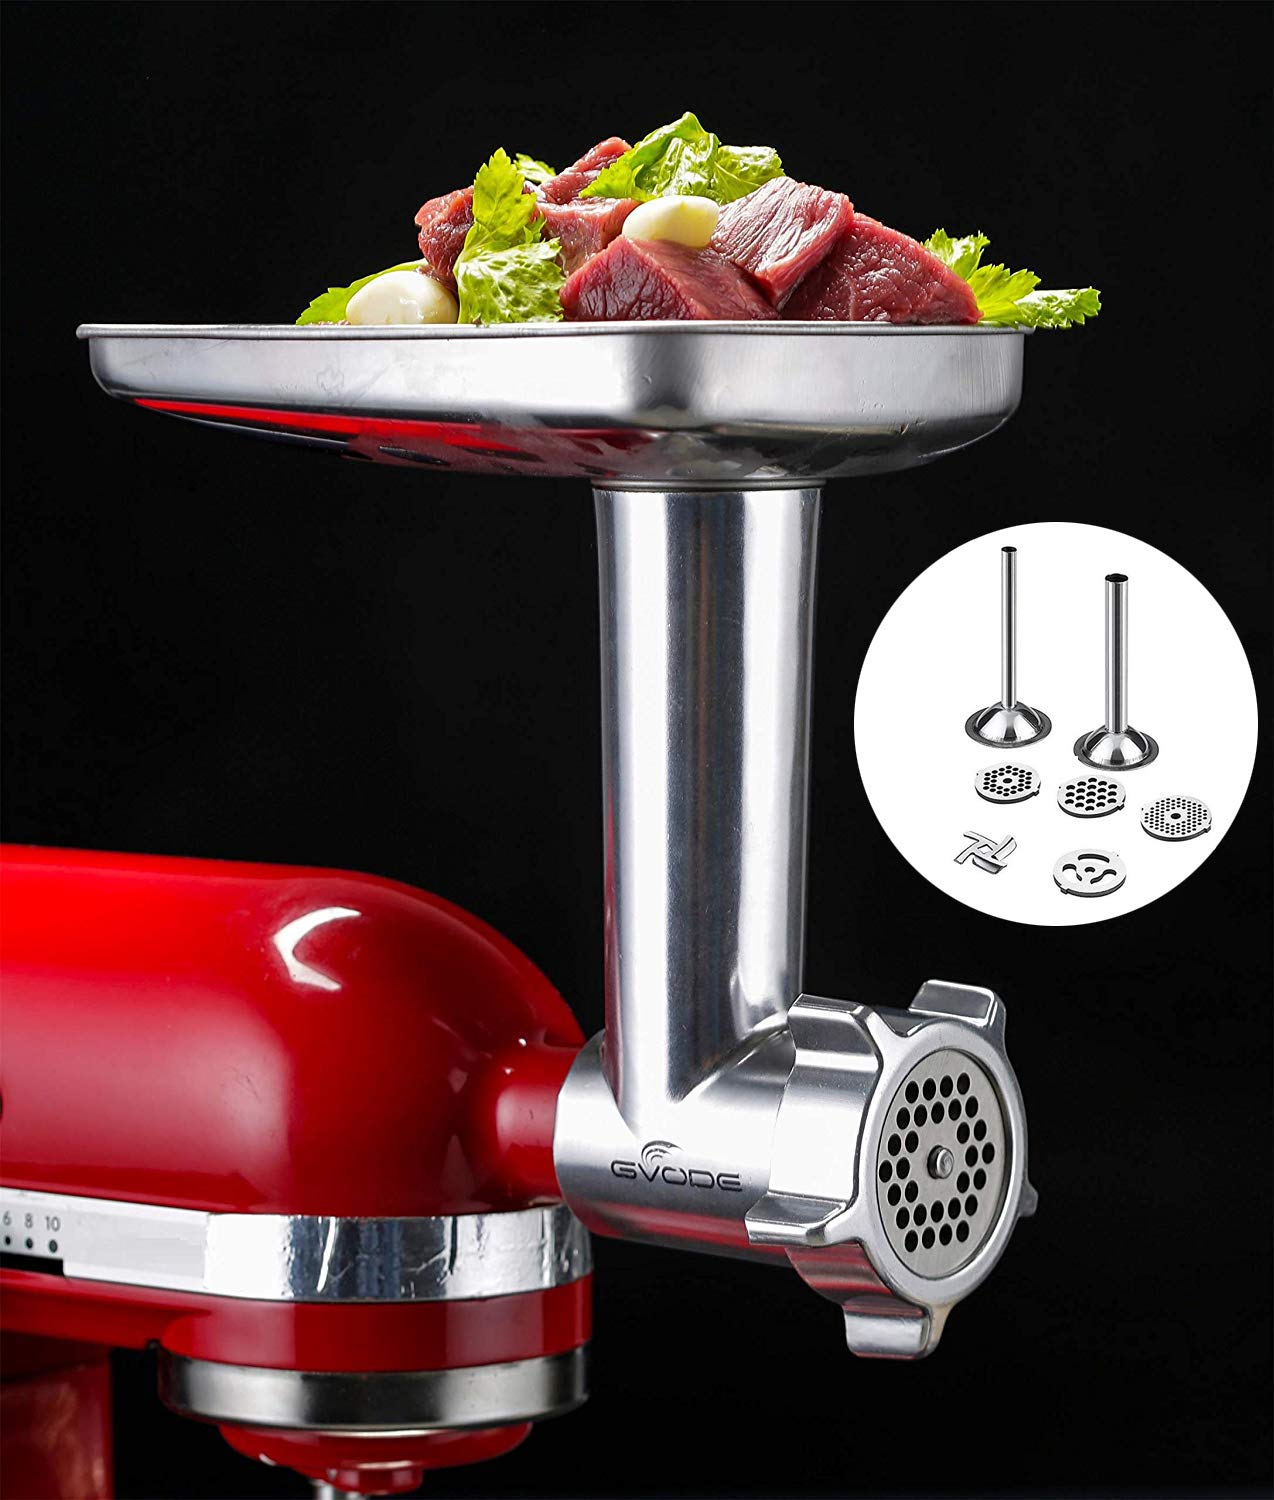 Food Grinder & Slicer Shredder Attachment Pack for KitchenAid Stand mixer, with Sausage Filler Tube, Work as Food Processor